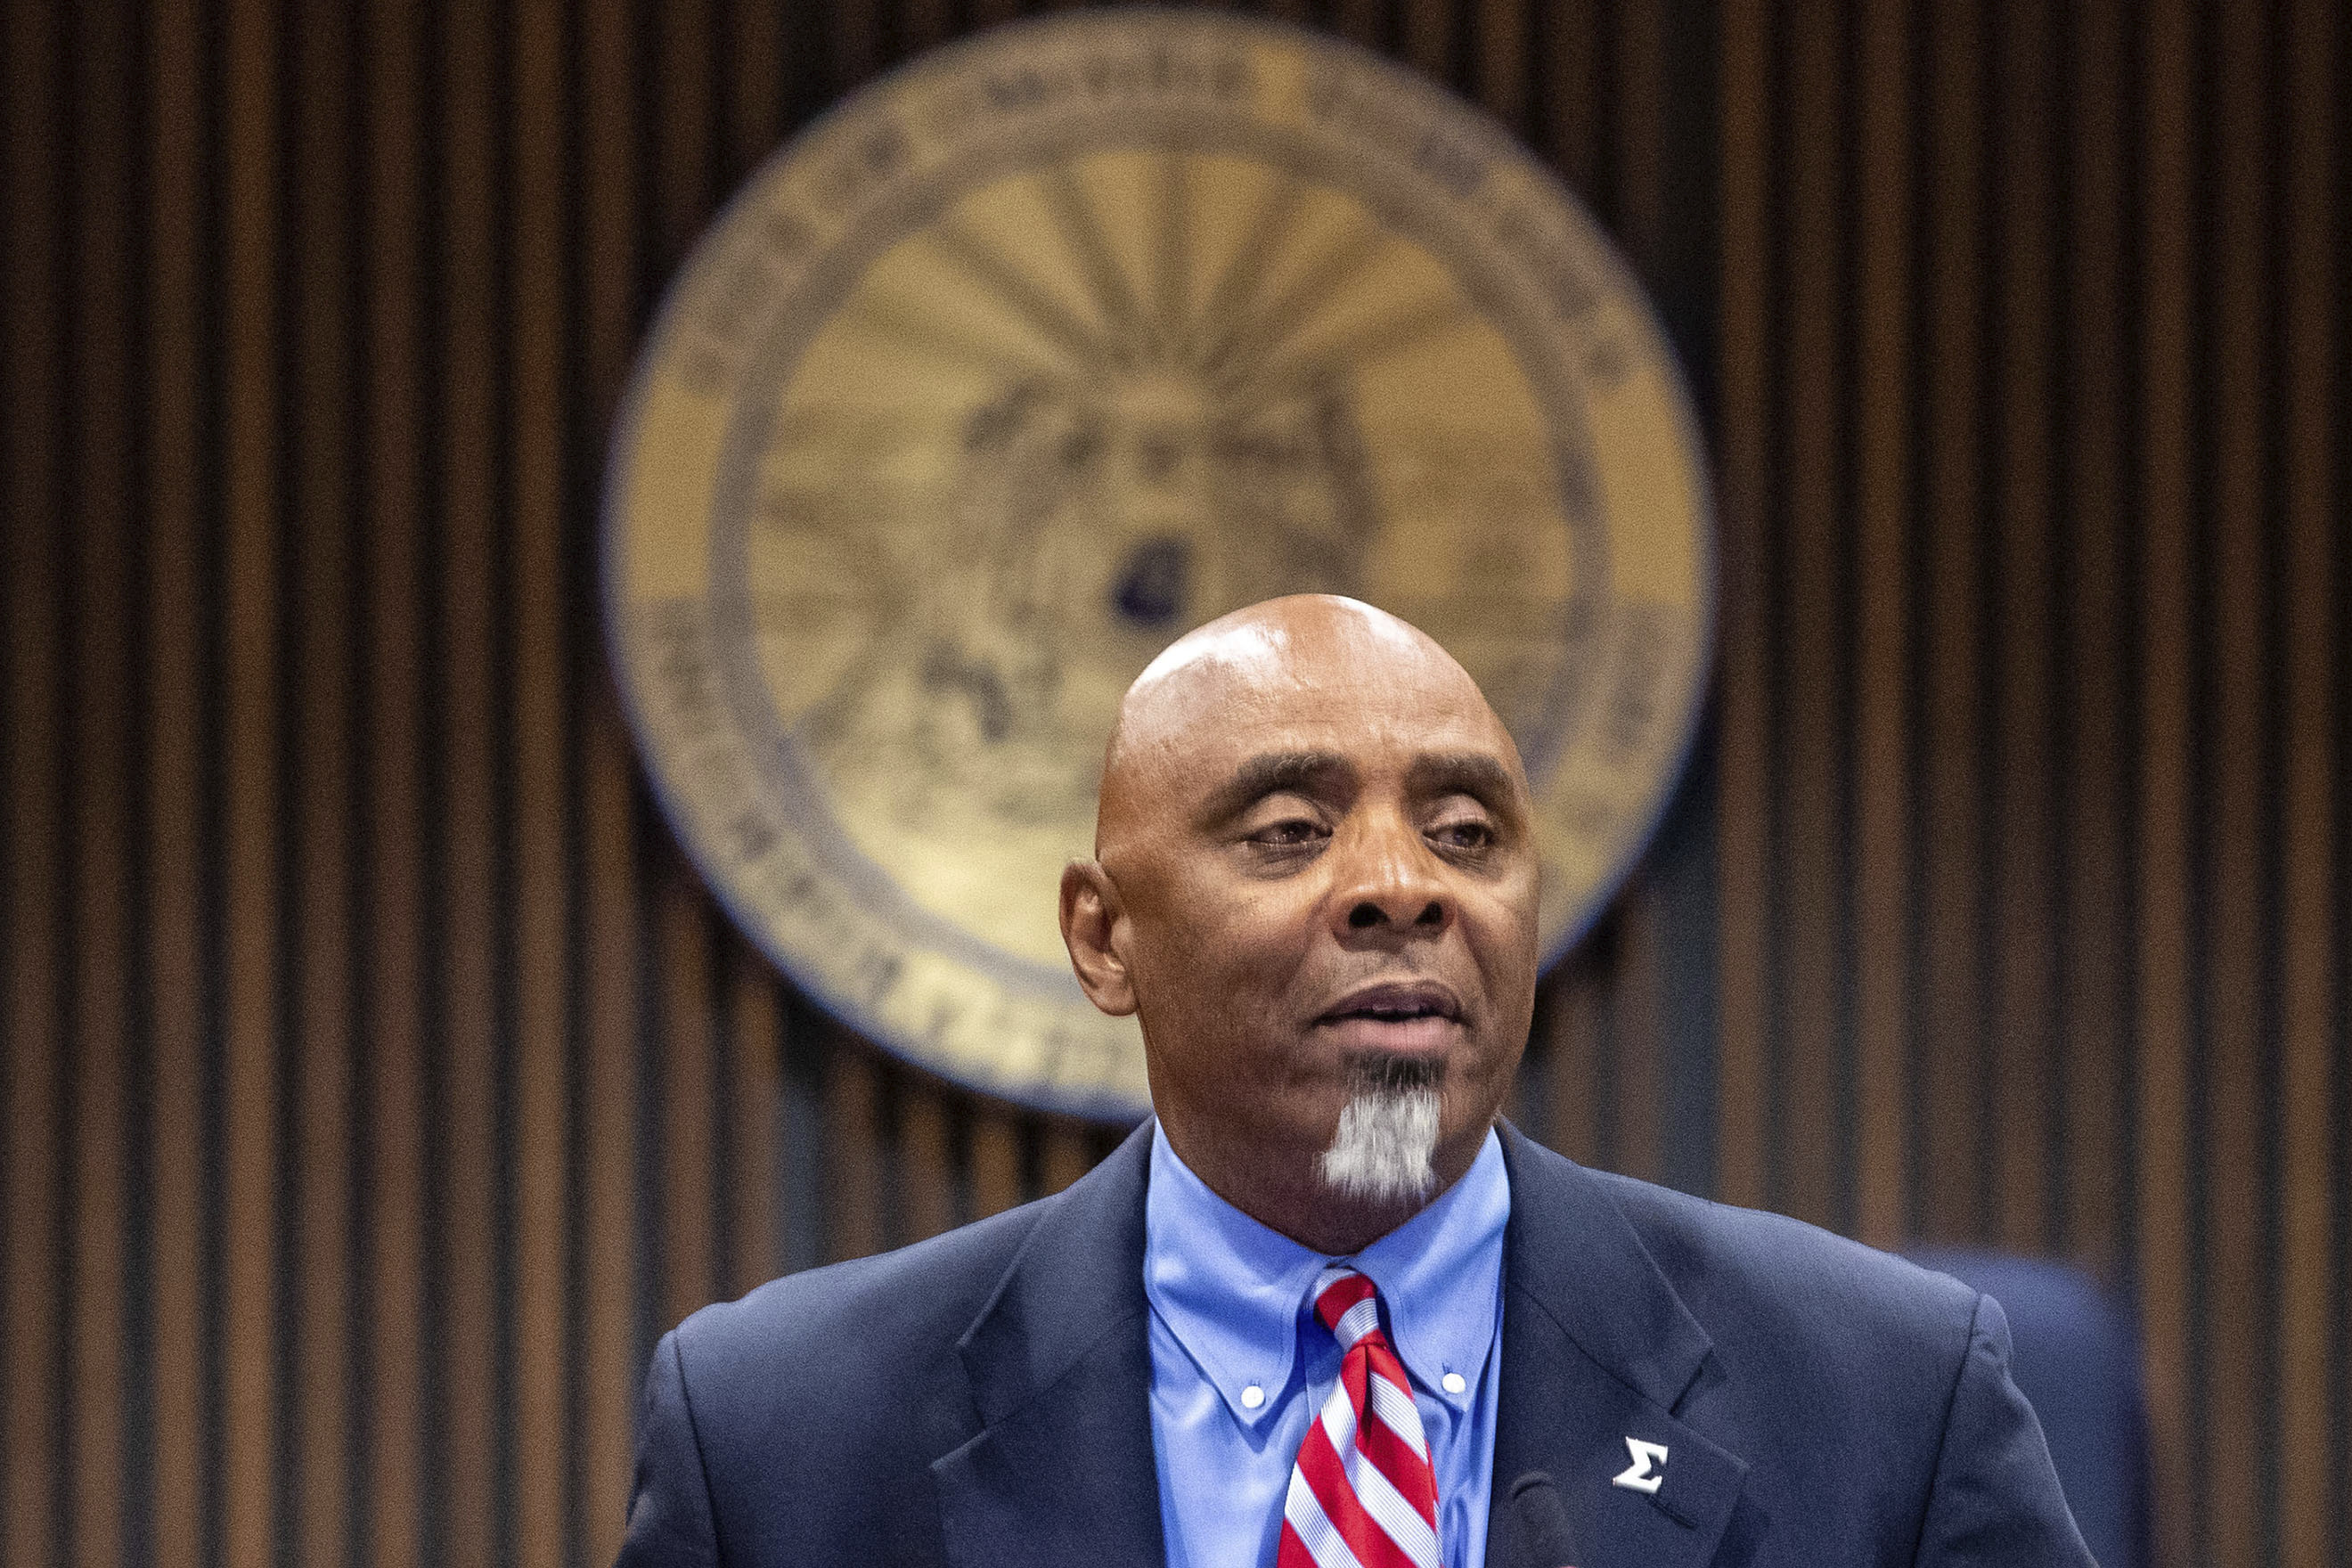 Special prosecutor Fred Franklin announces charges in the shooting death of James Scurlock during a press conference at the Omaha city council legislative chambers on Tuesday, Sept. 15, 2020, in Omaha. (Chris Machian/Omaha World-Herald via AP)